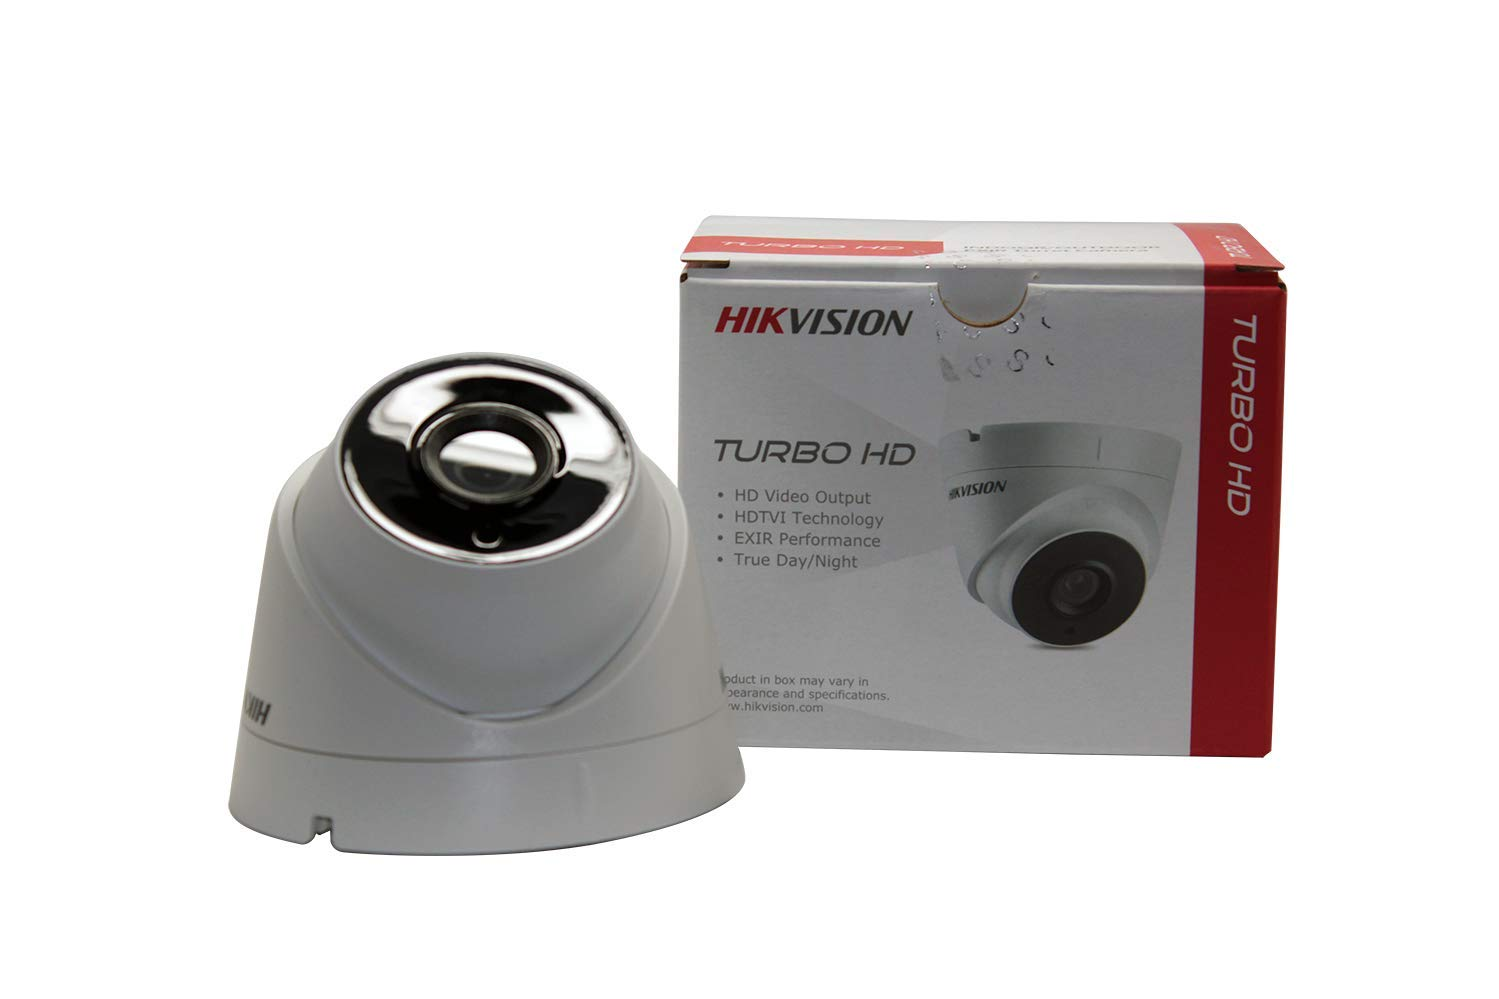 Hikvision 5MP CMOS Image Sensor Turbo HD EXIR Turret HD-TVI Camera with 2.8mm Fixed Lens, IR 40M, IP67 OSD menu, DNR, DWDR Model: DS-2CE56H1T-IT3(2.8MM)